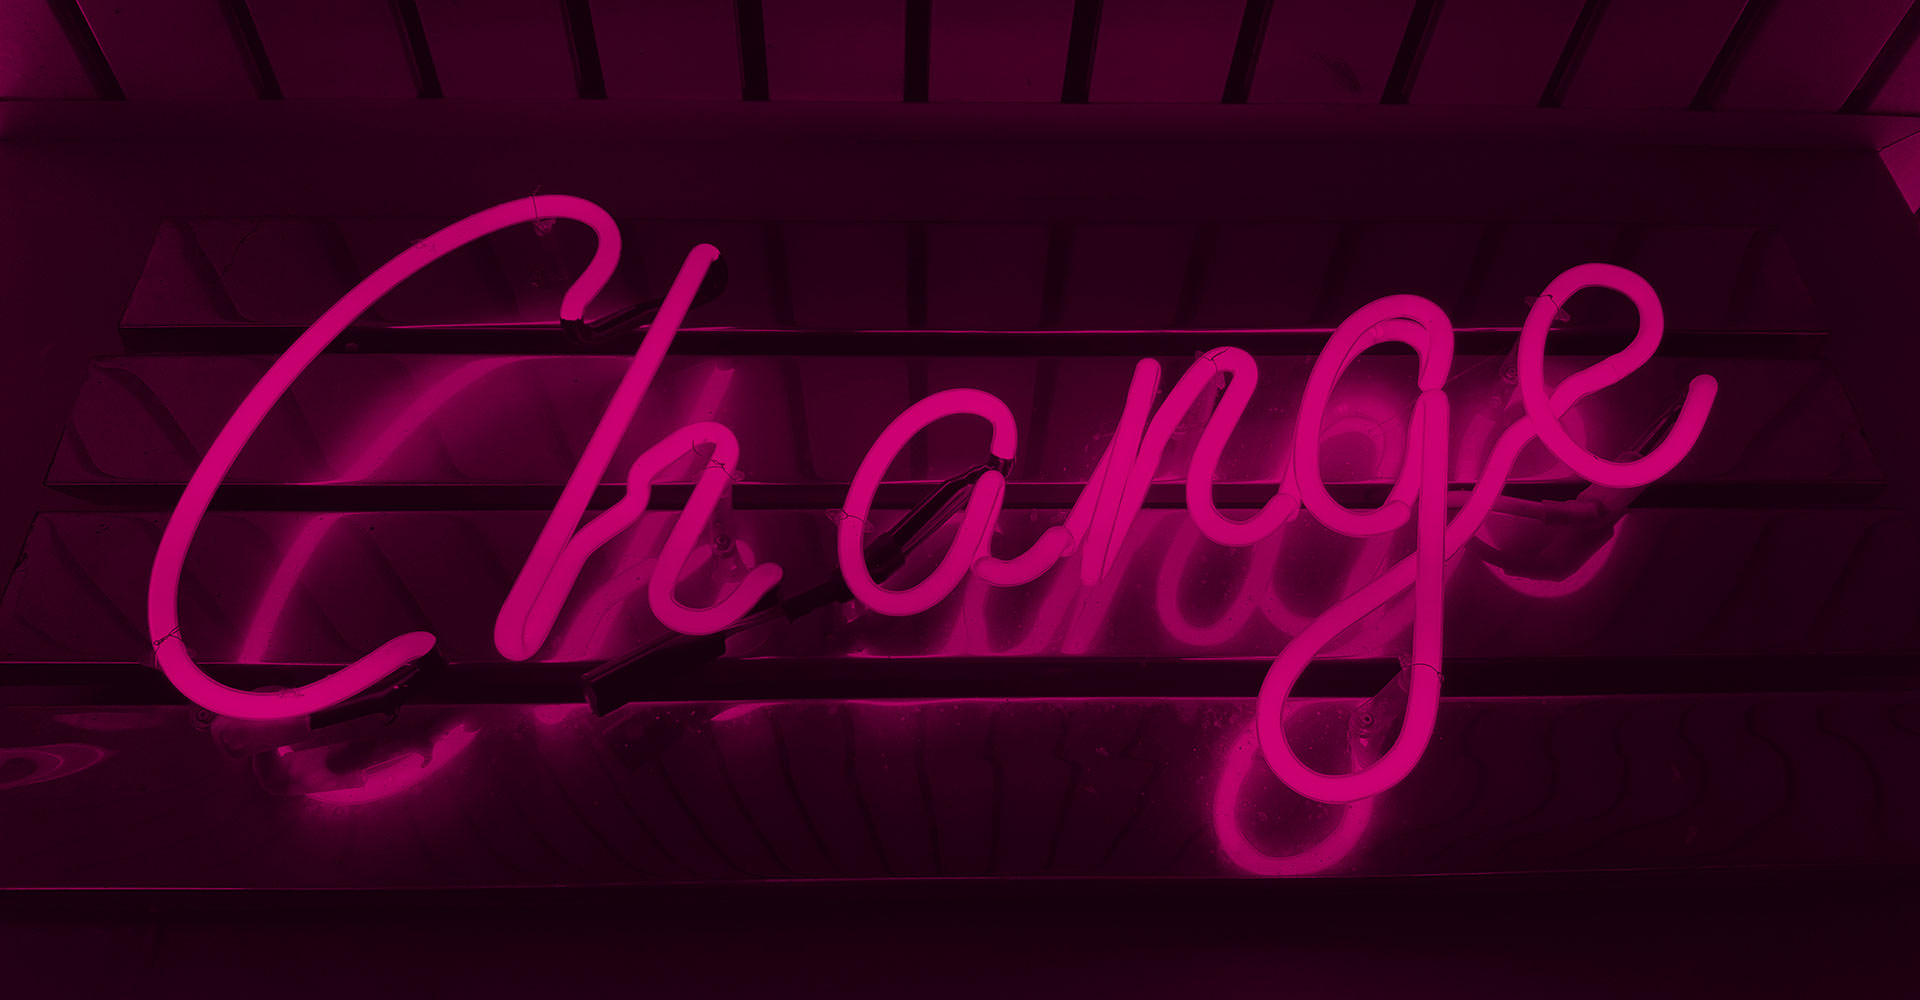 Change in neon lights